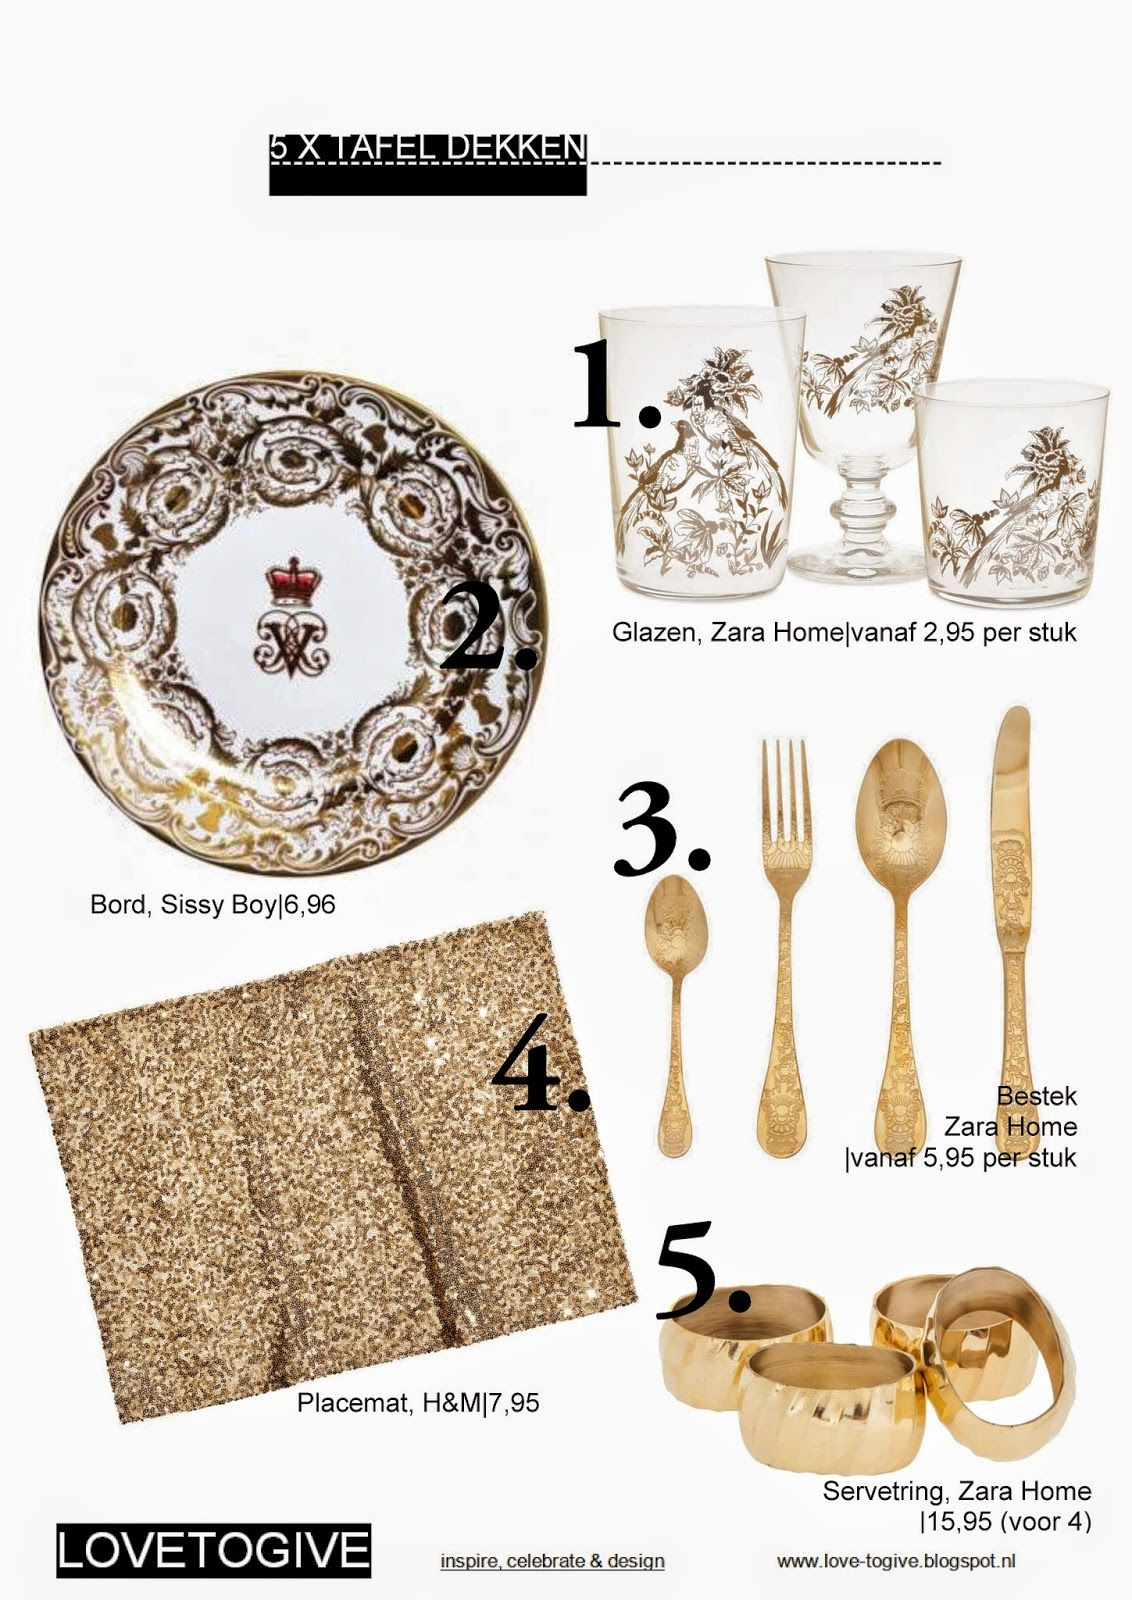 Zara Home Bestek Lovetogive Love To Eat 5 X Tafel Dekken Bestek 5 95